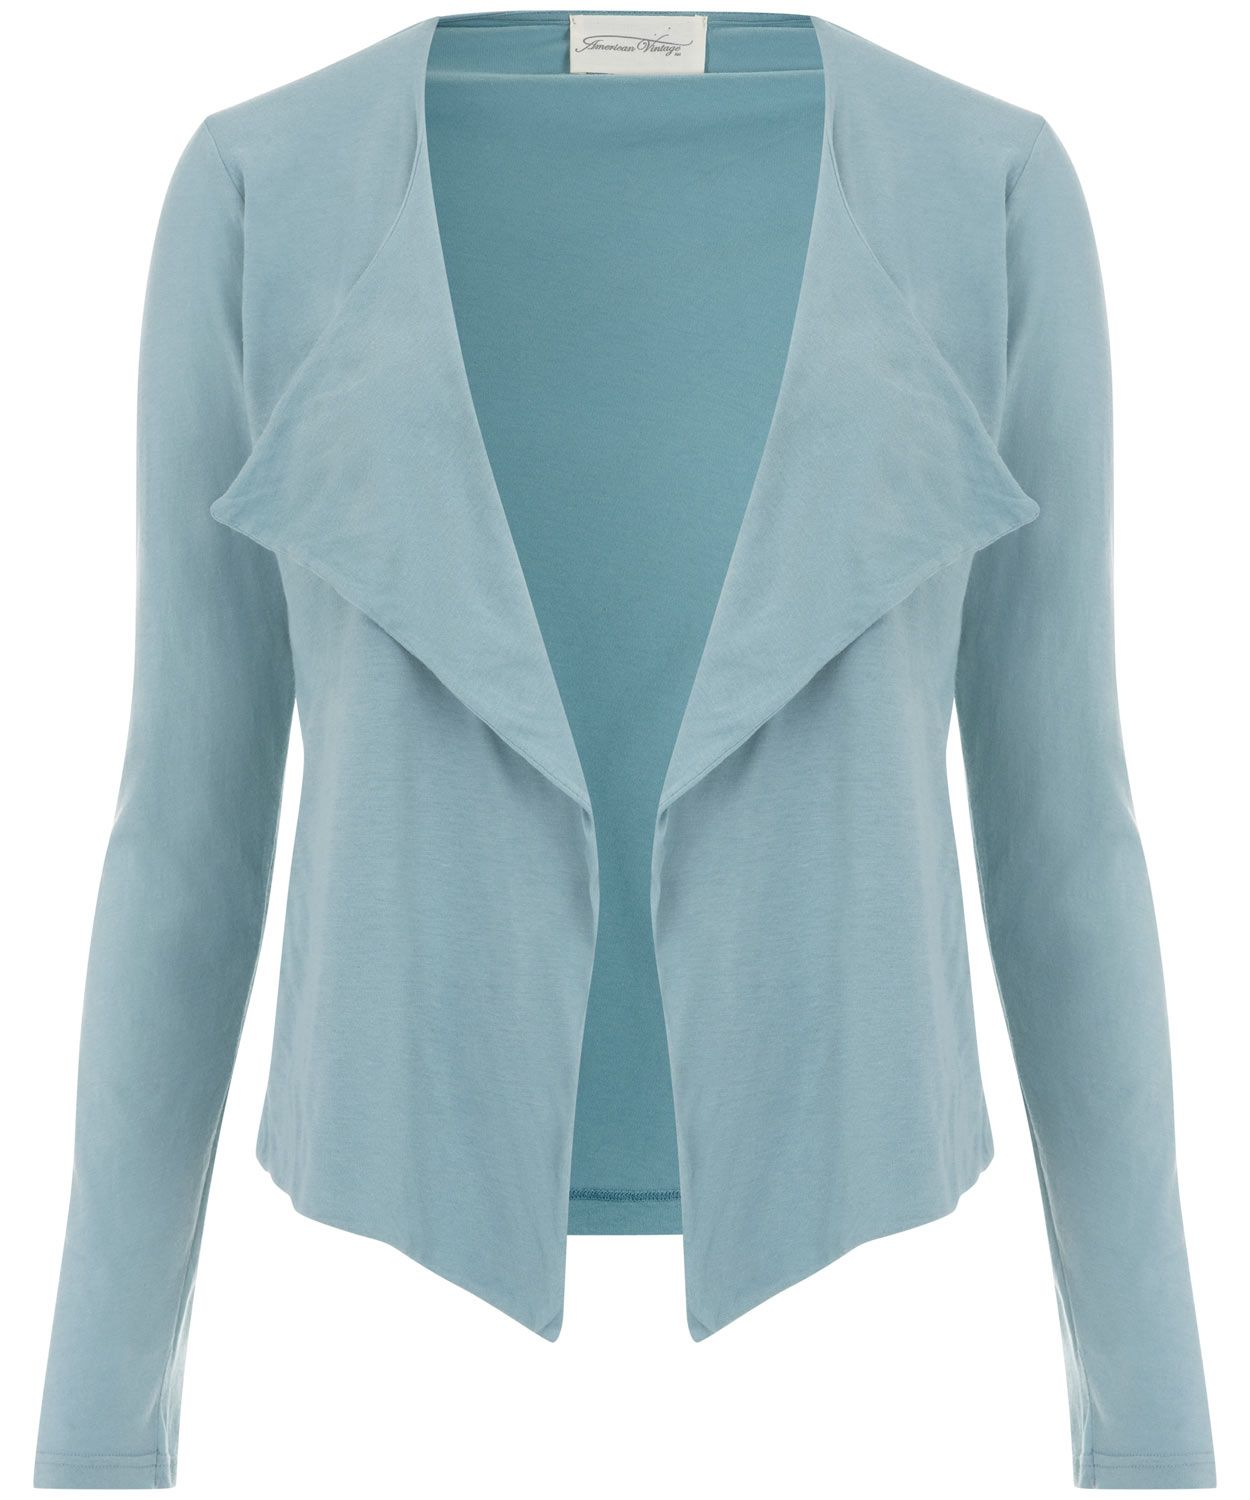 Turquoise Waterfall Jersey Jacket, American Vintage. Shop the ...